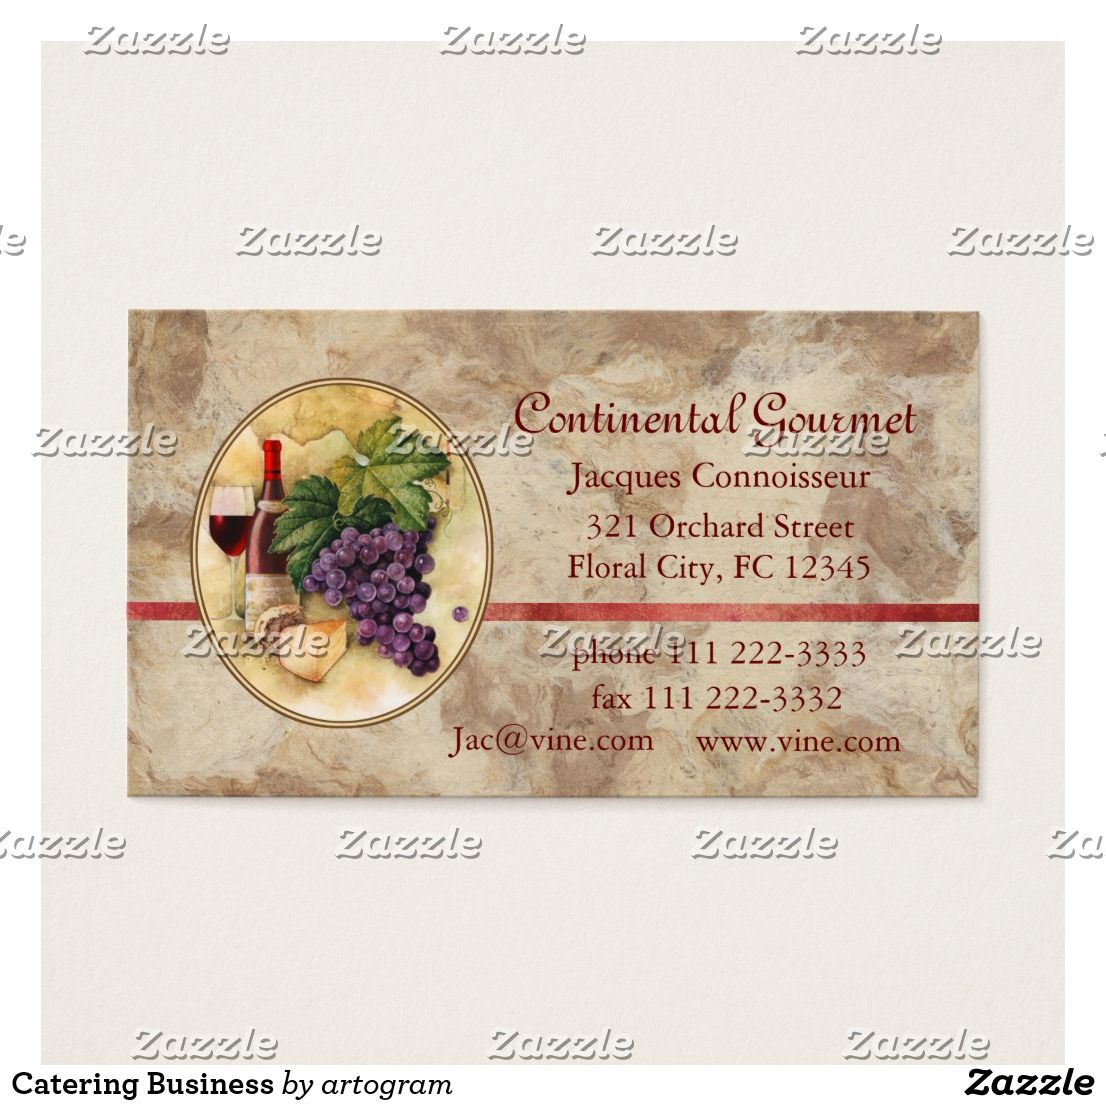 Catering Business Card Zazzle